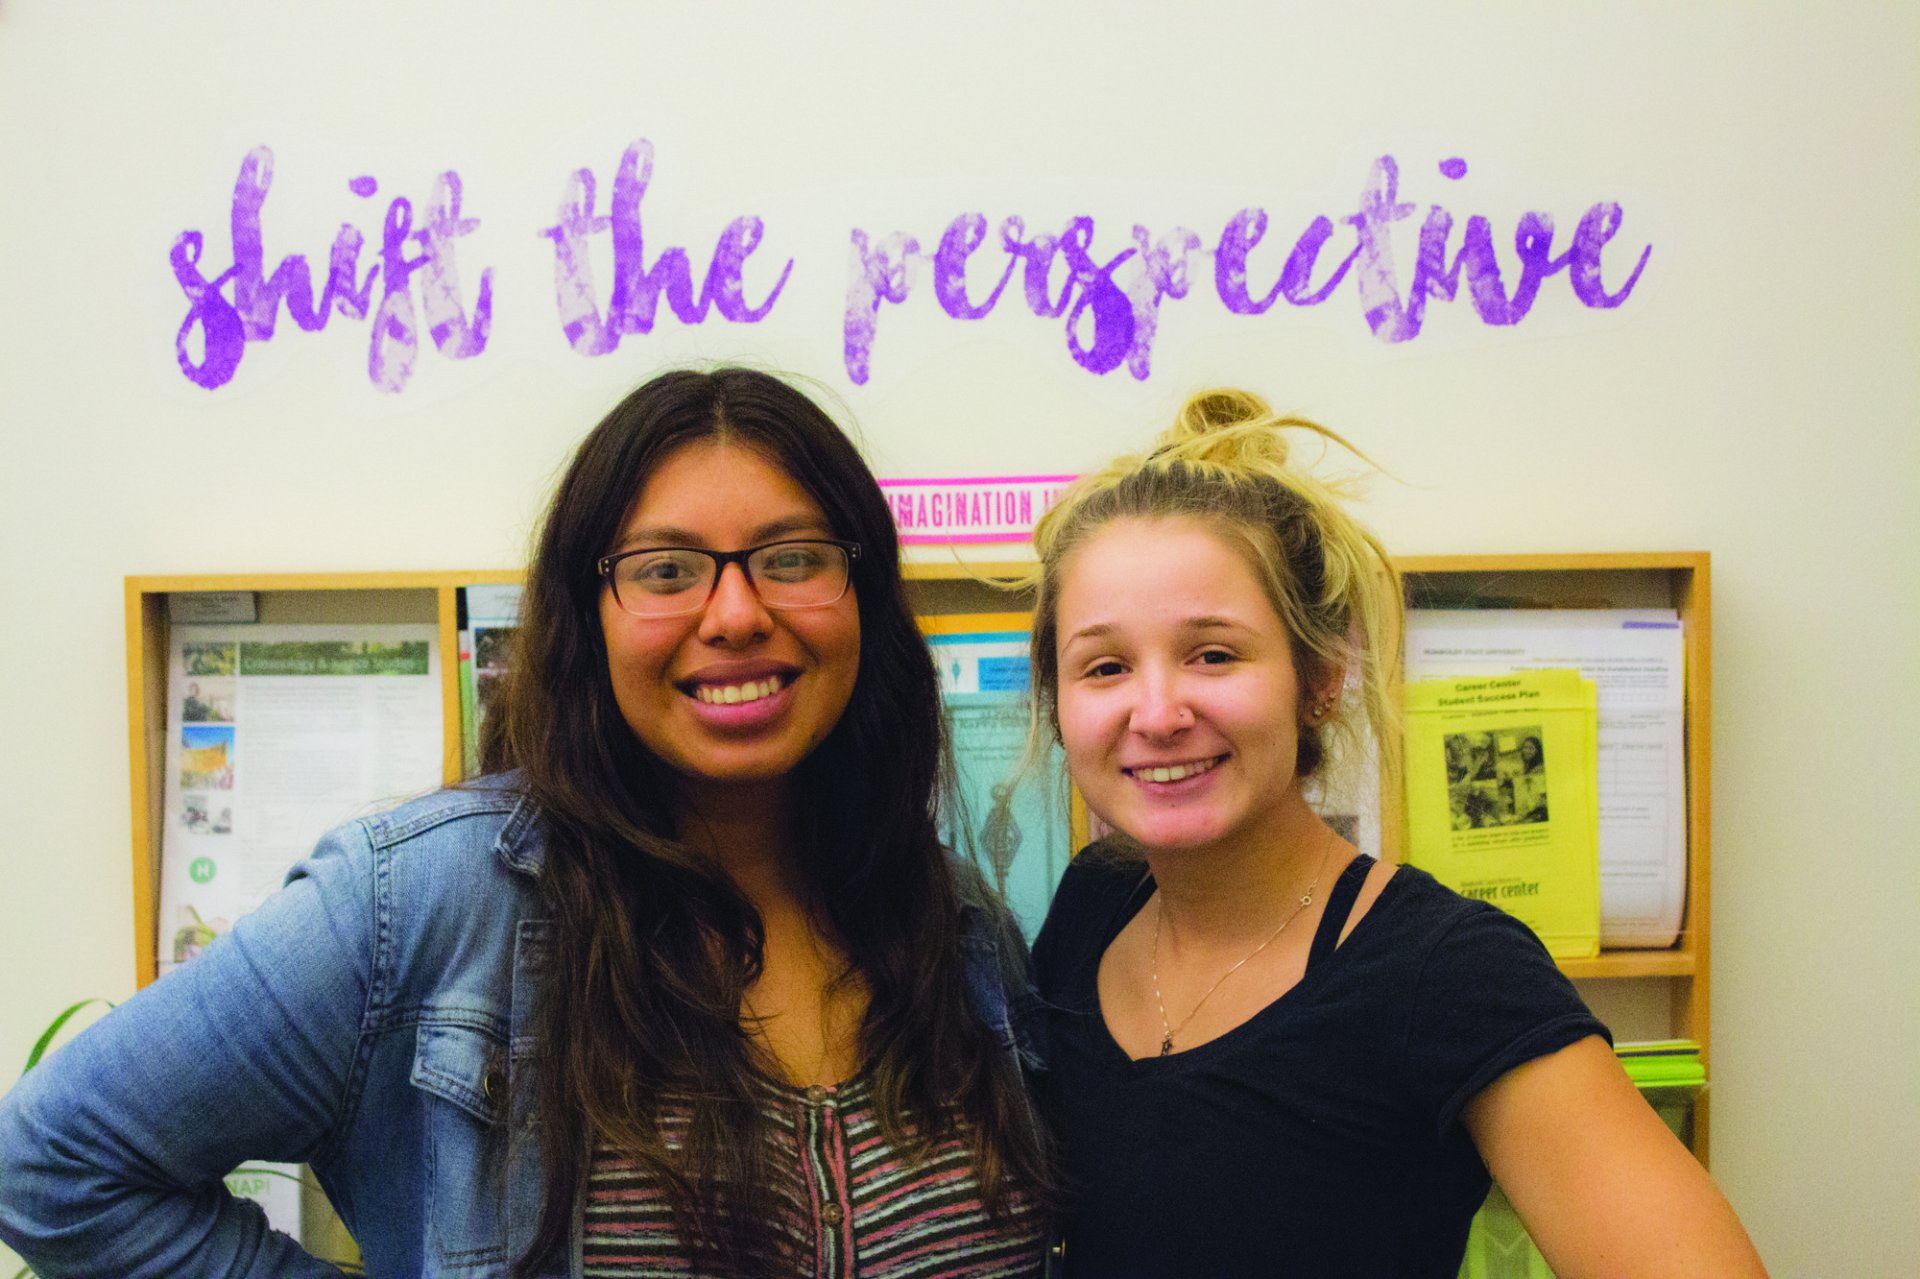 Criminology and Justic Studies seniors, Belen Gutierrez  and Ashleigh DeFraga, are sociology peer mentors who have also volunteered with YES! since freshman year. | Photo by T.William Wallin